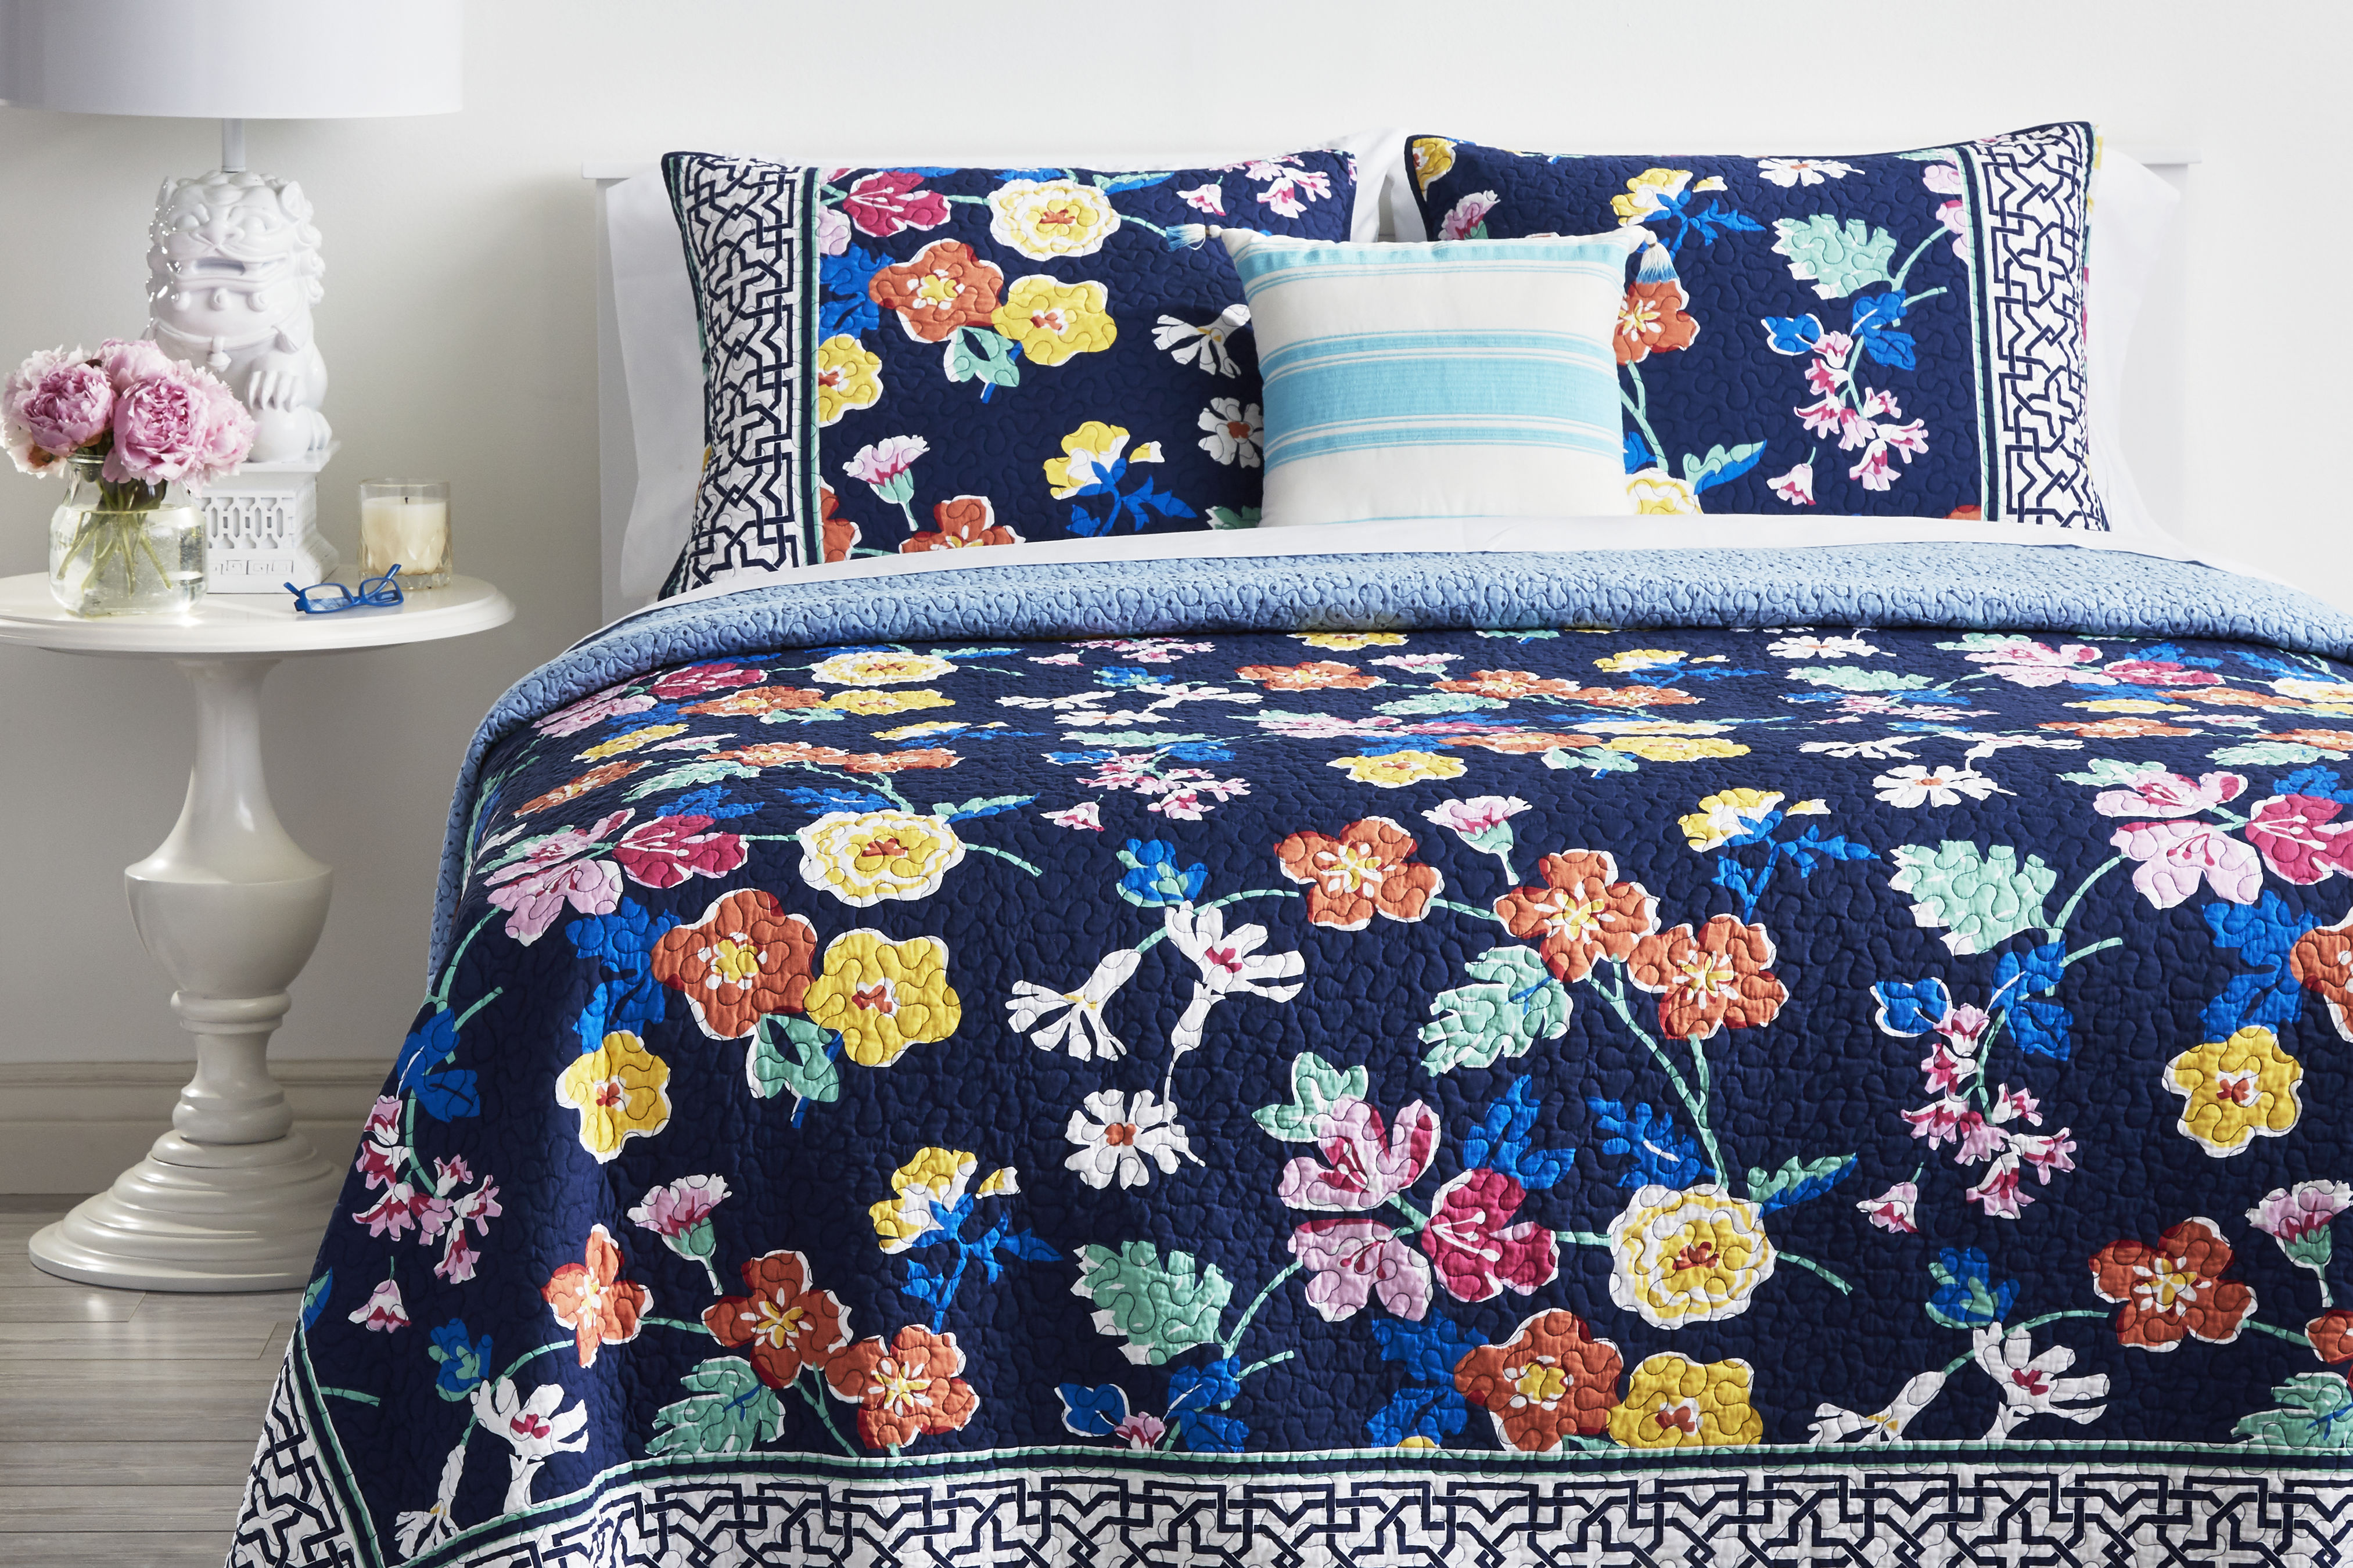 Vera Bradley's New Bedding Collection is Here and We Want it All!